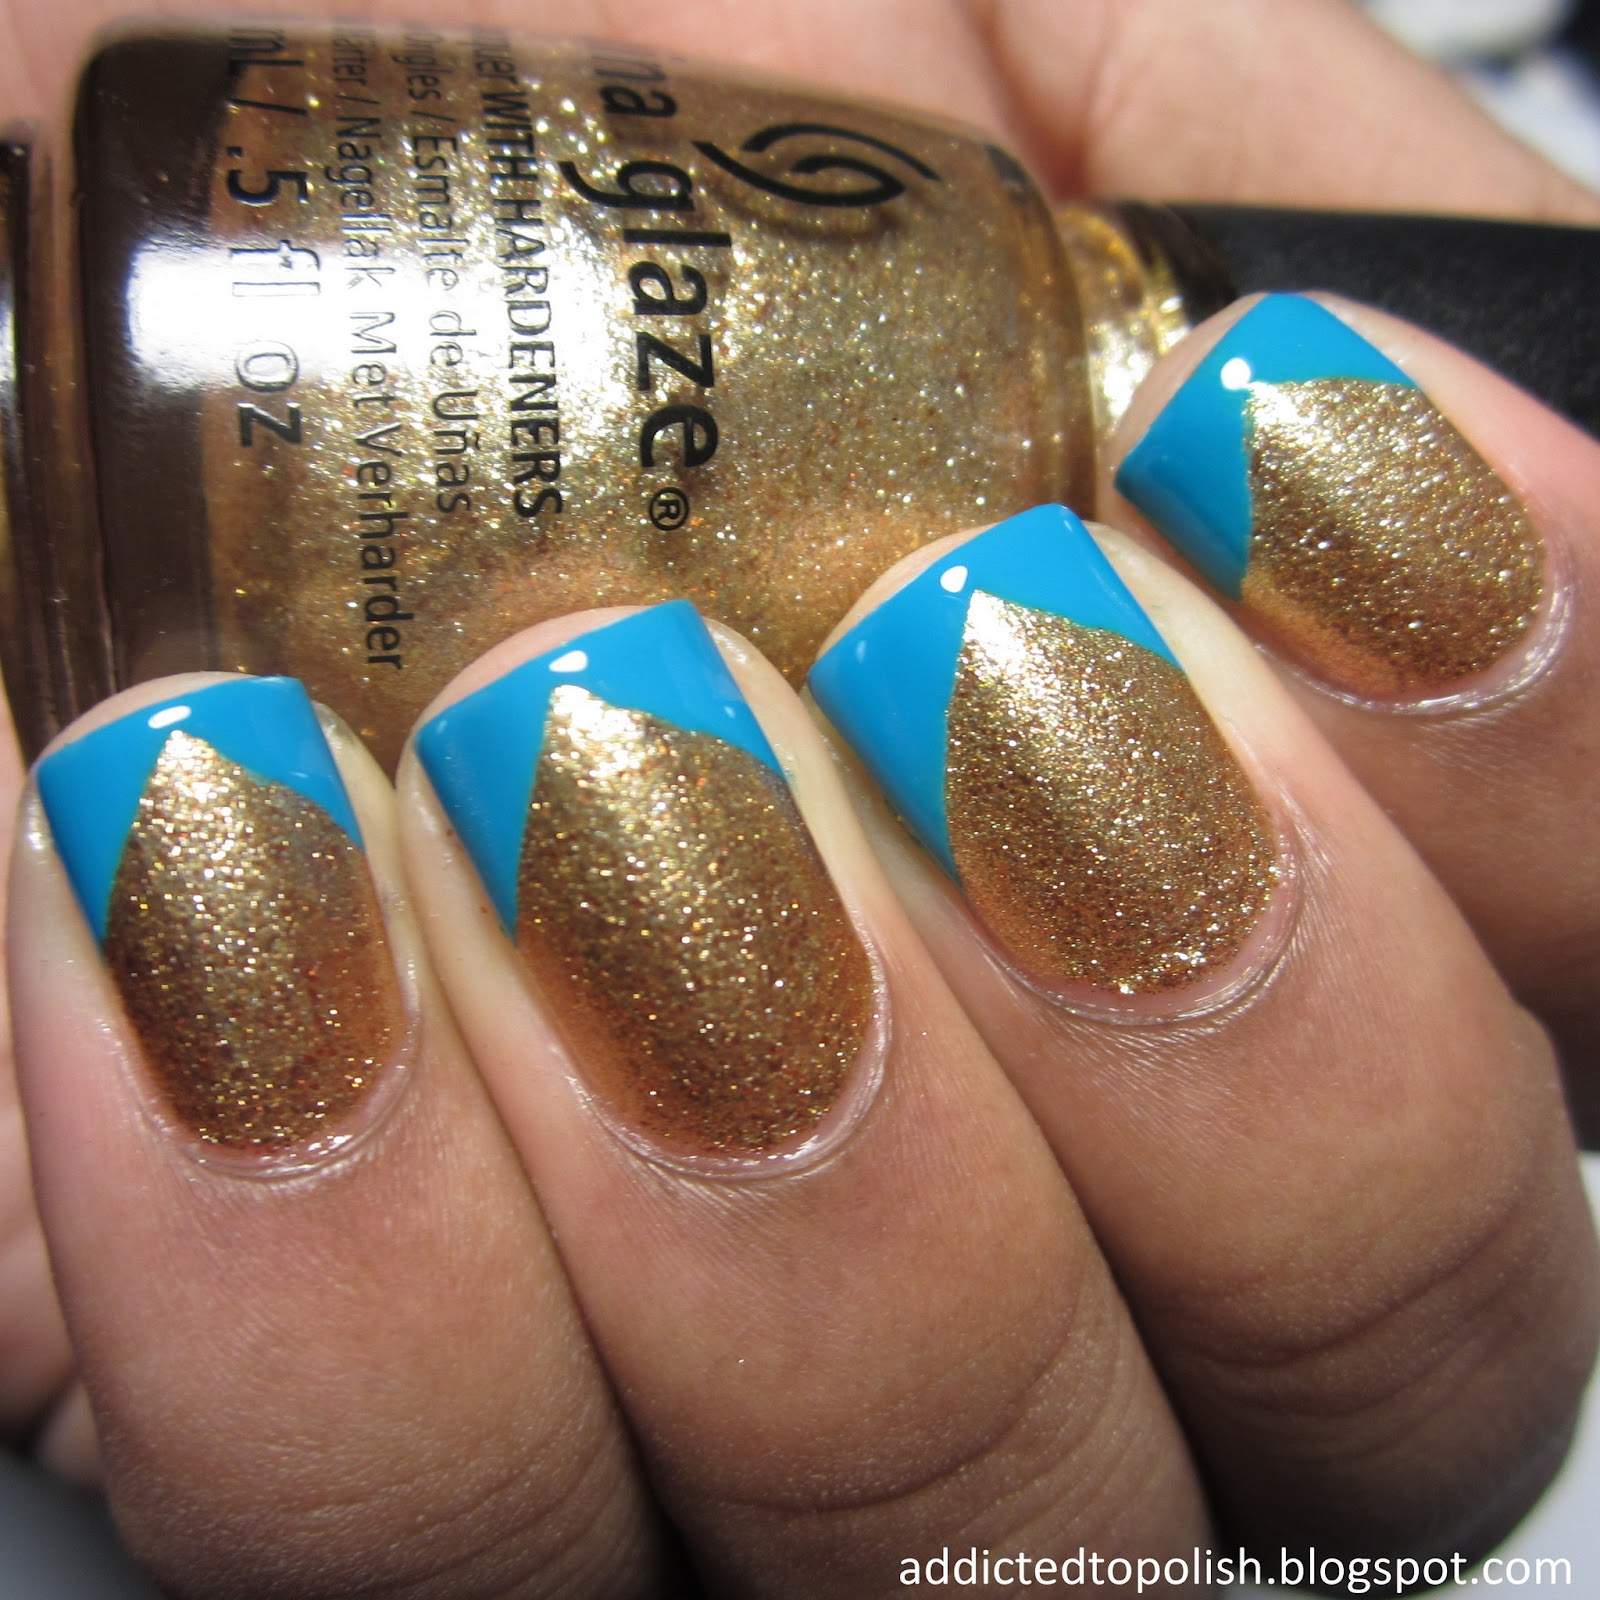 Addicted to Polish: Twinsie Tuesday - Celebrity Nail Recreation